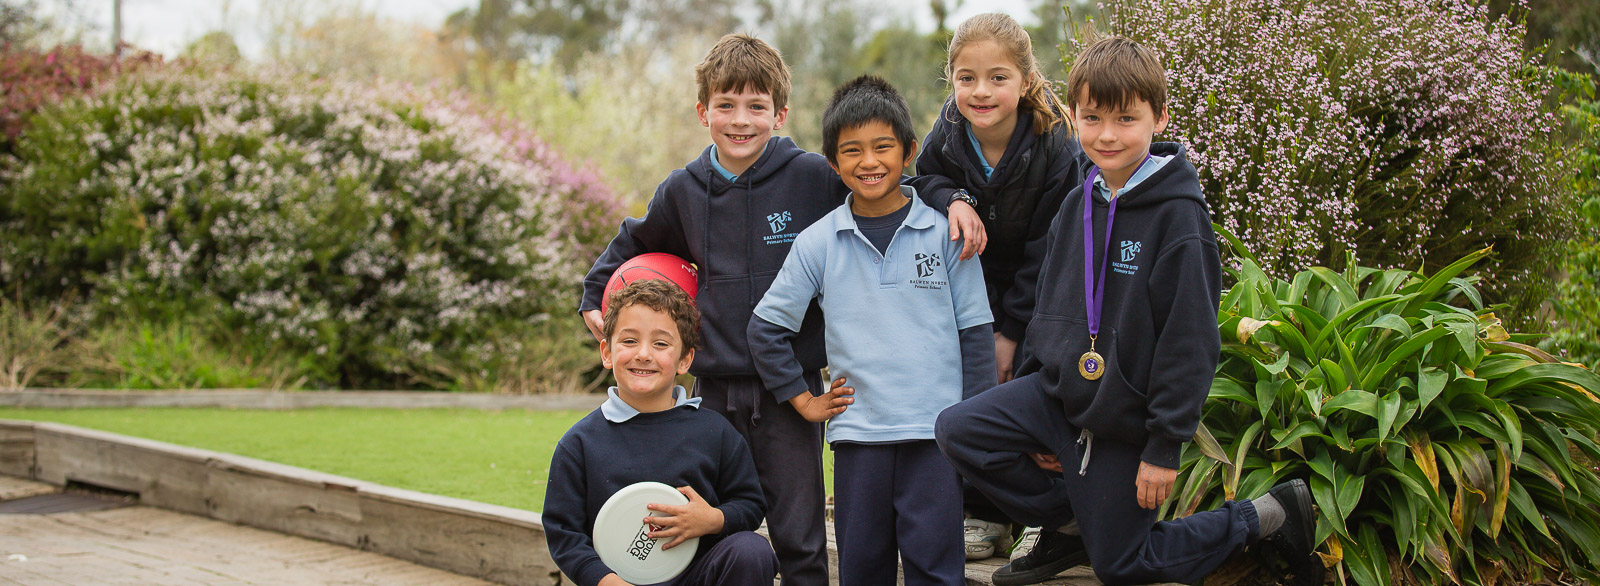 School Primary Balwyn